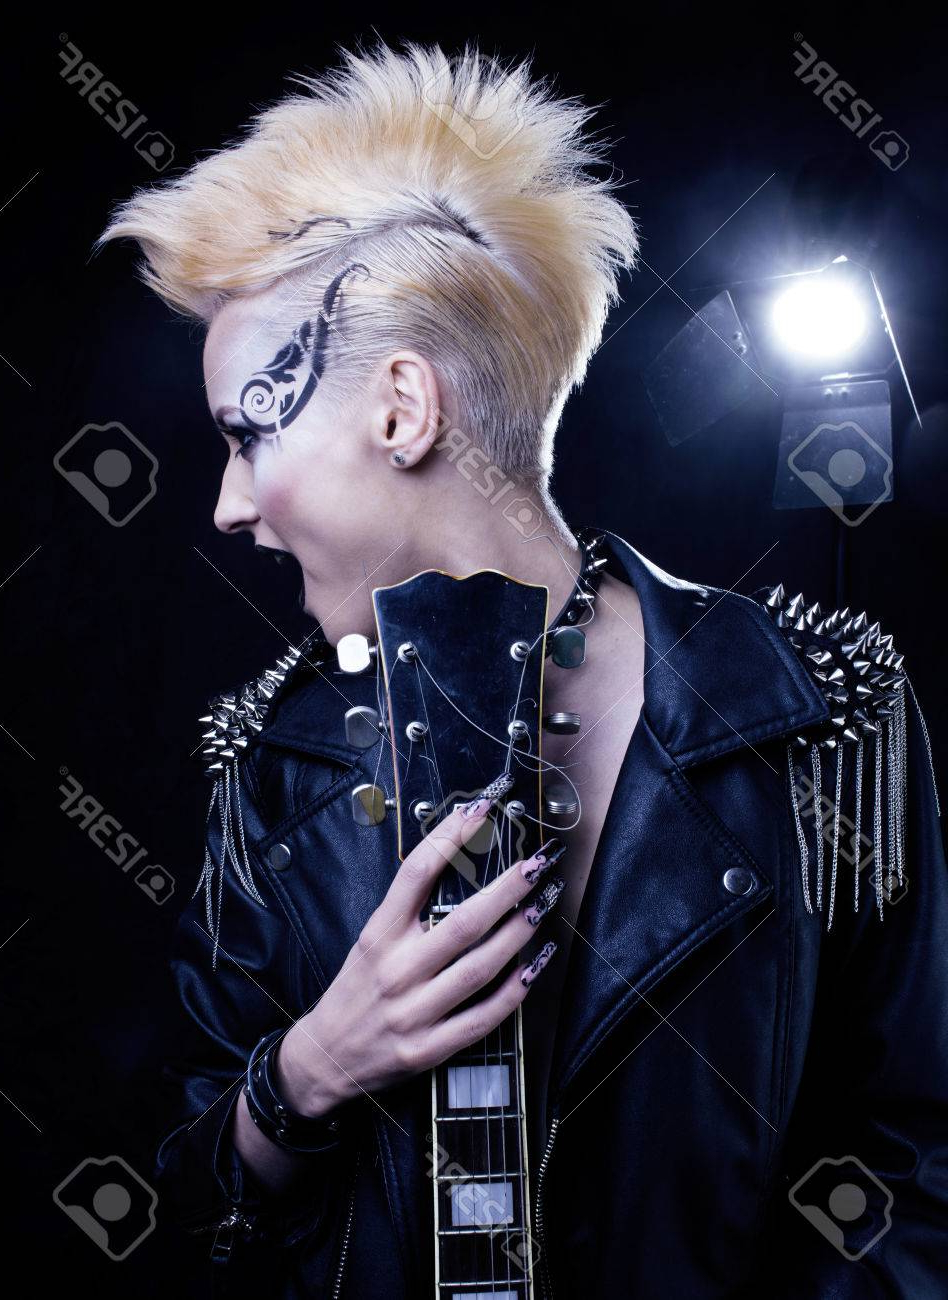 Most Current Rocker Girl Mohawk Hairstyles Within Fashion Rocker Style Model Girl Portrait. Hairstyle. Punk Woman. (View 11 of 20)